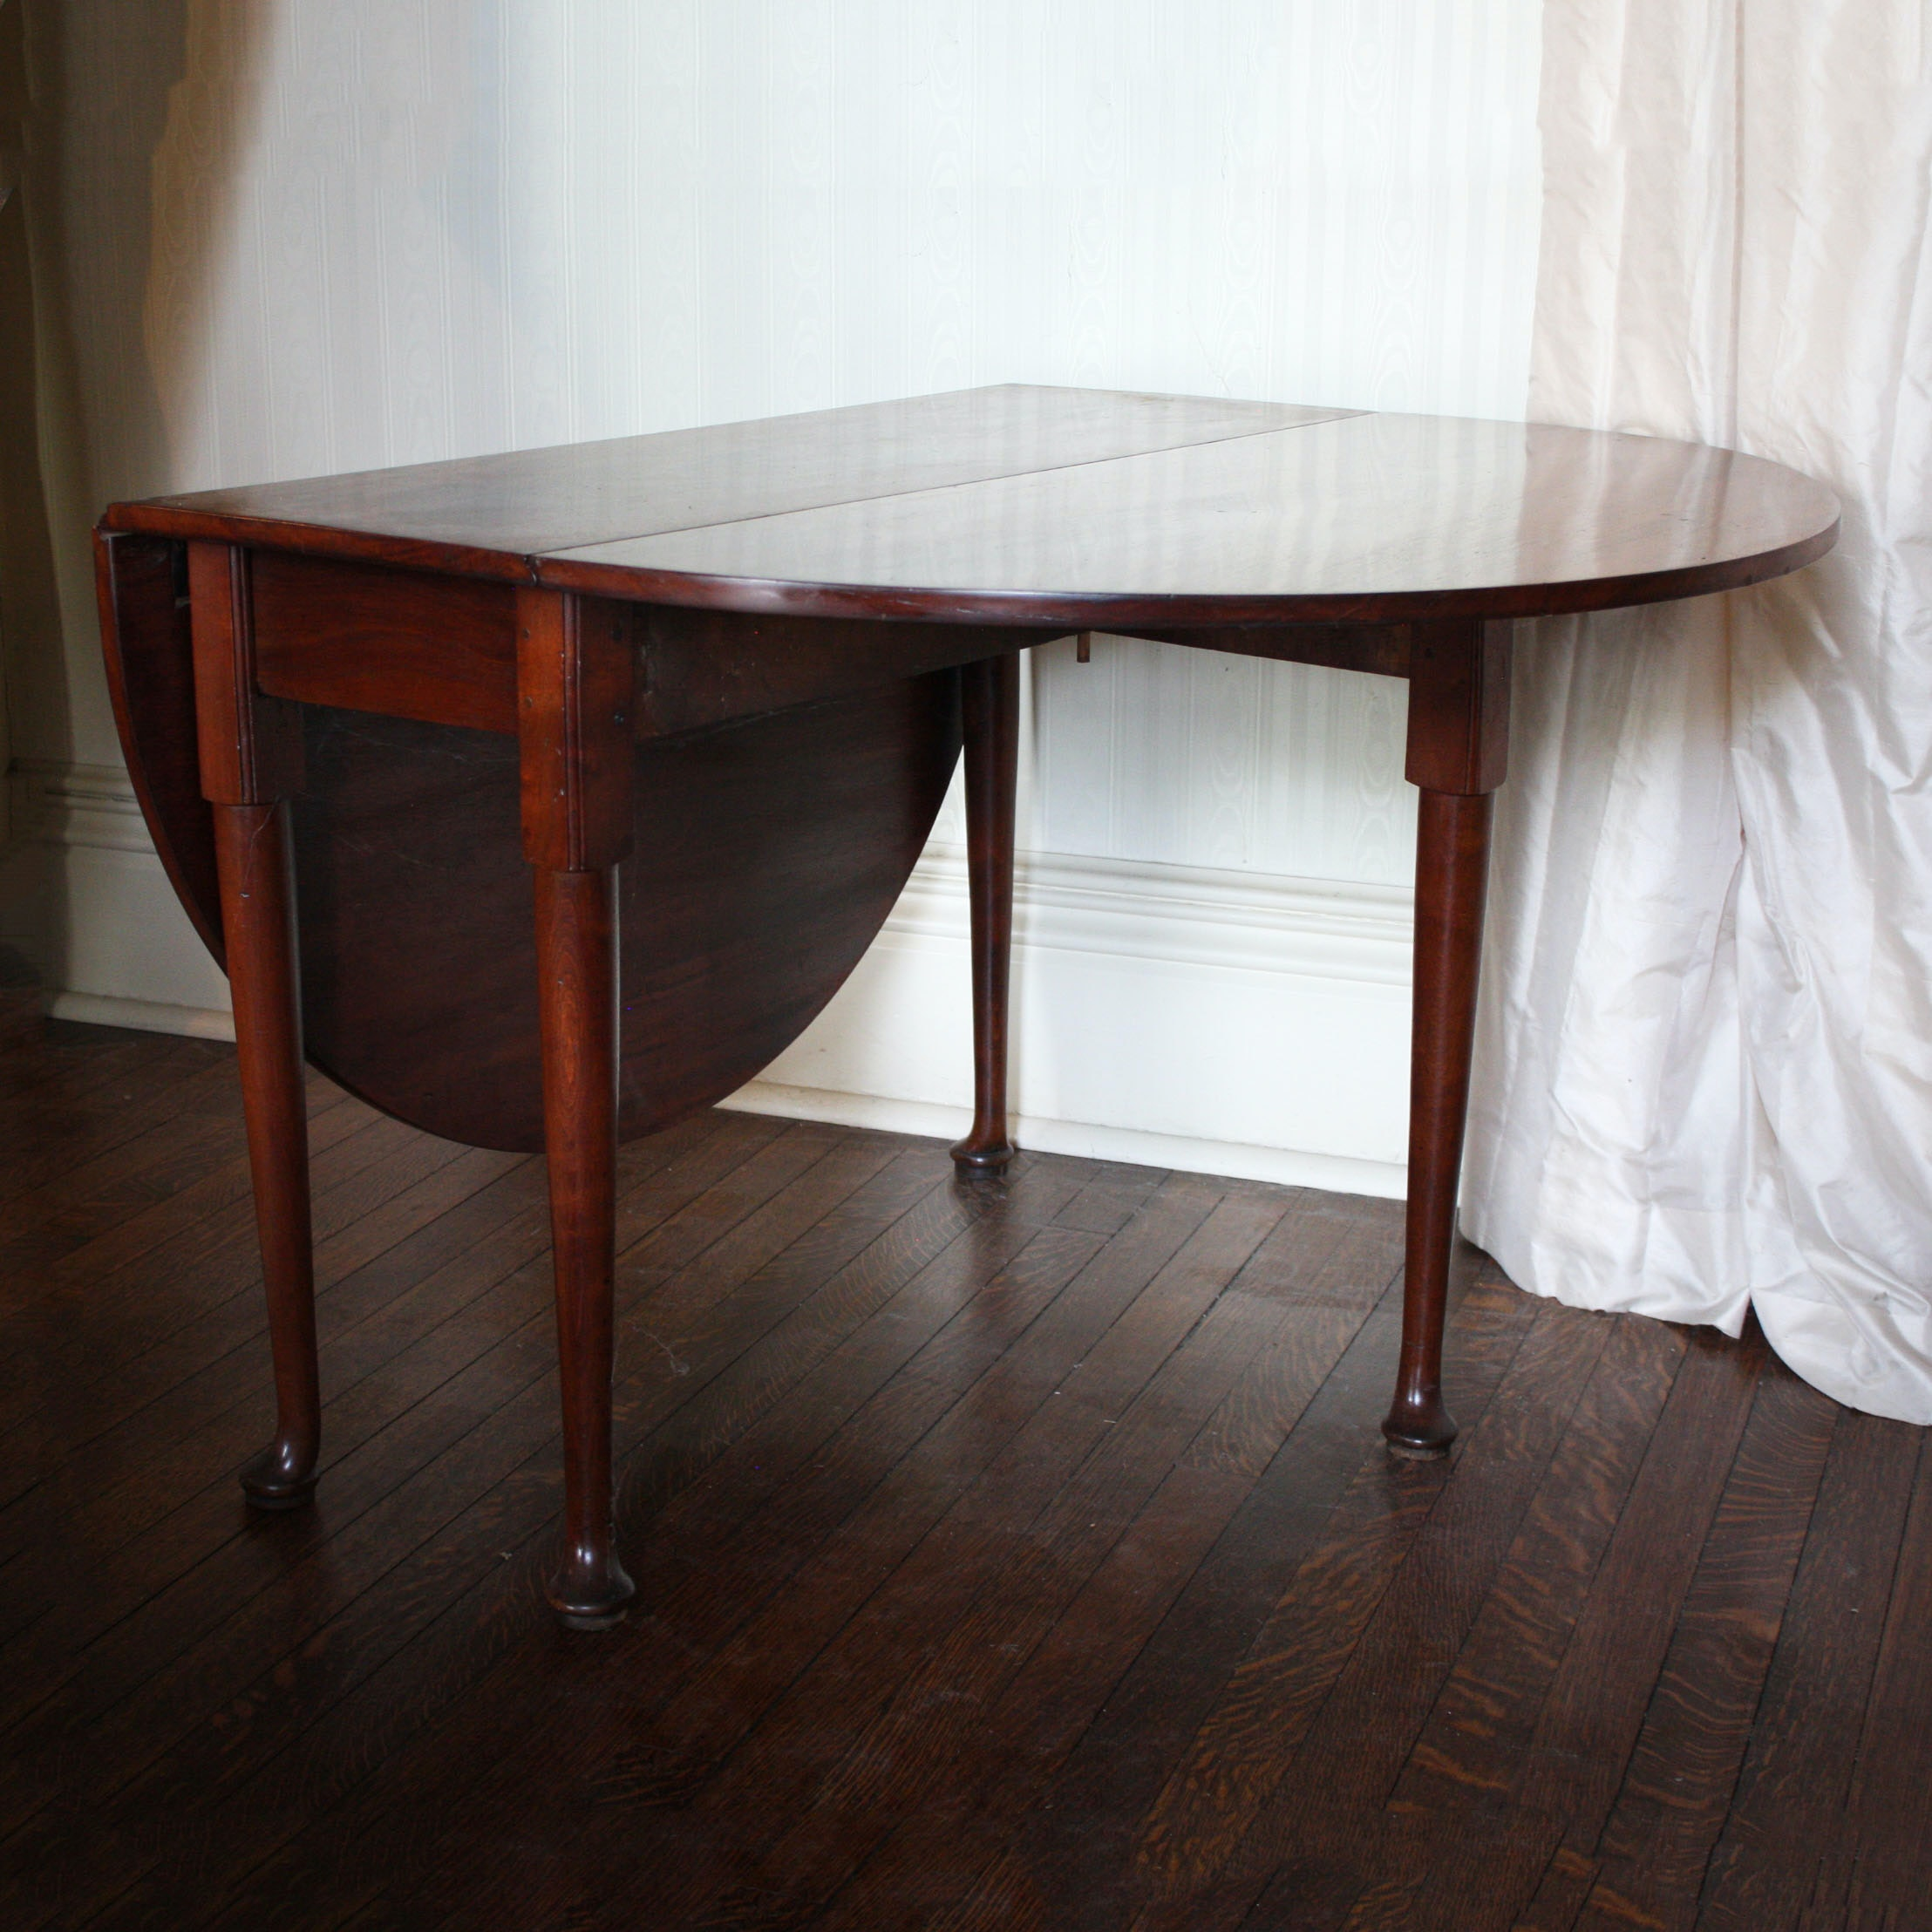 Antique English Queen Anne Oval Mahogany Drop Leaf Table